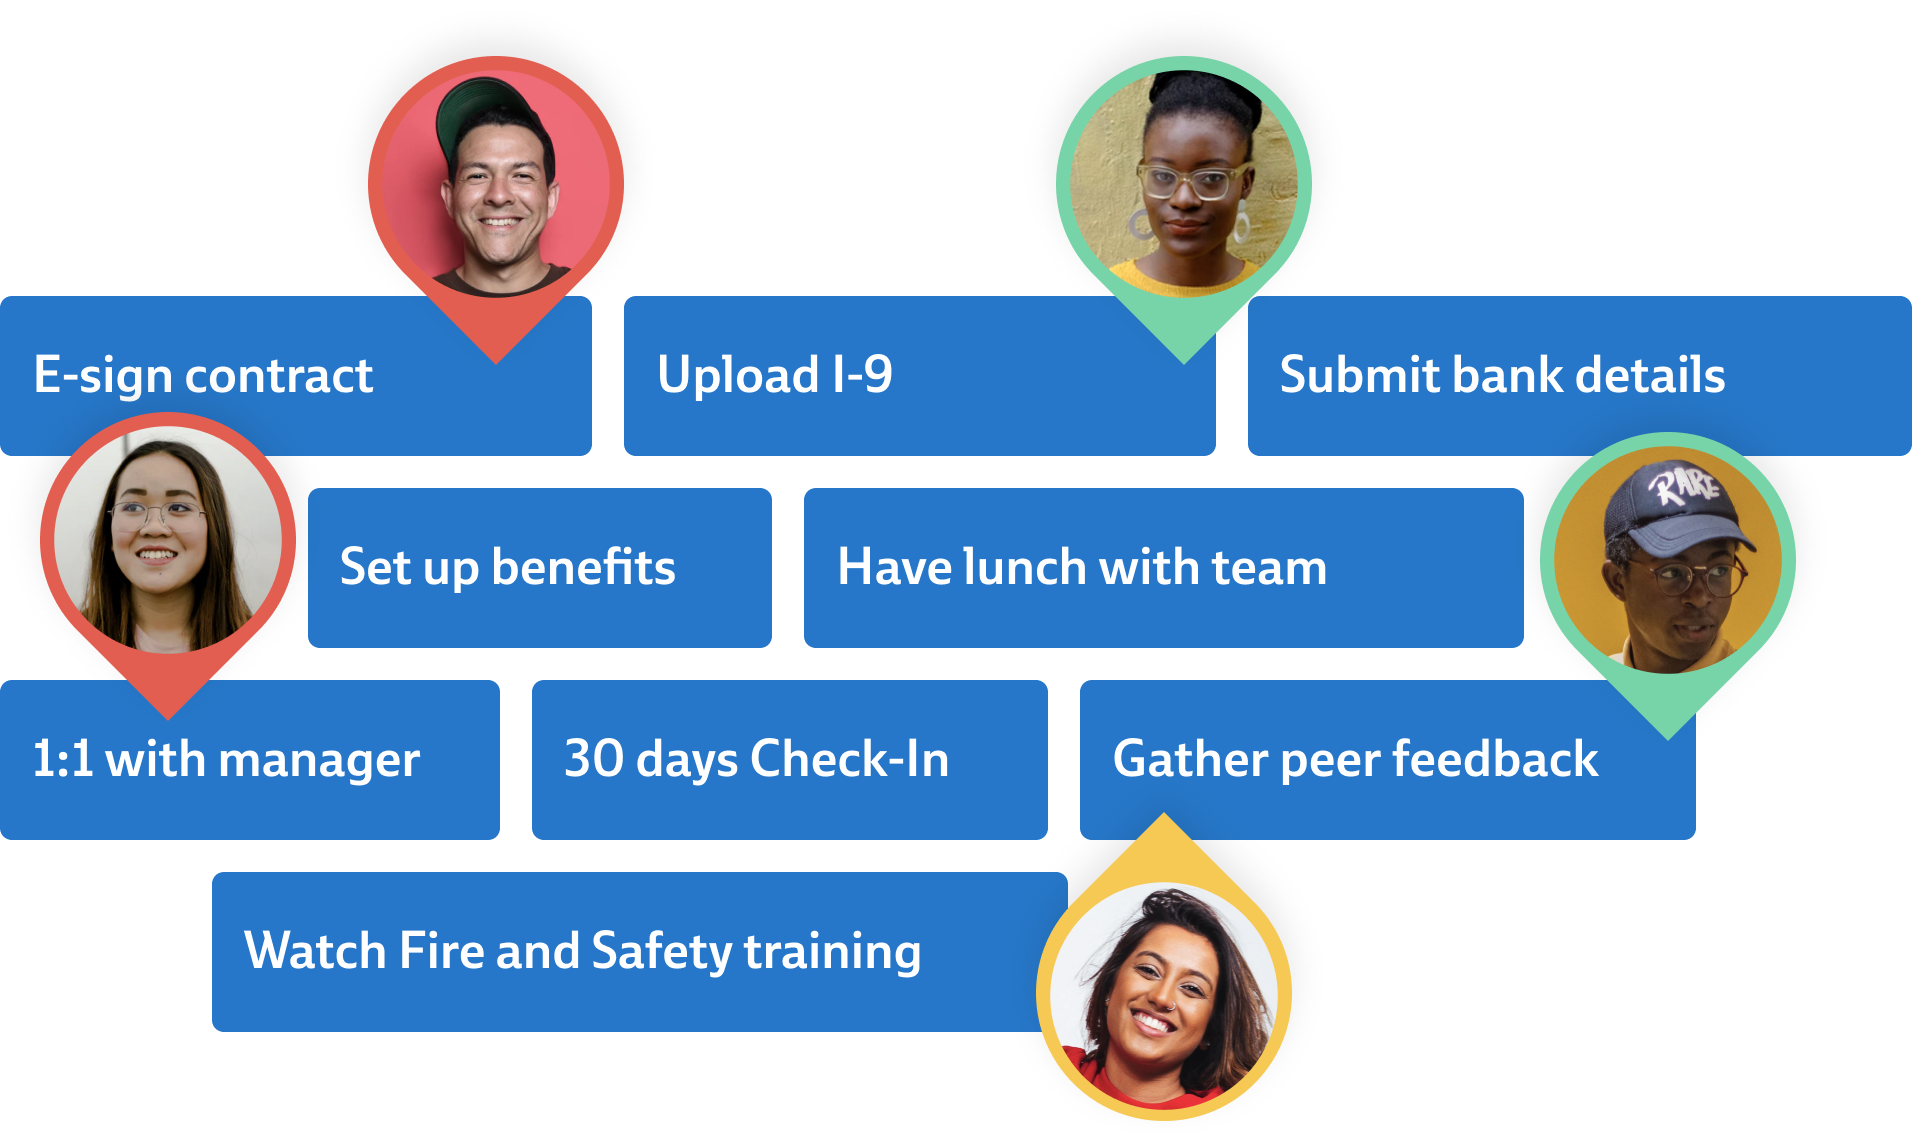 A timeline of tasks with photos of different people indicating they have completed certain tasks